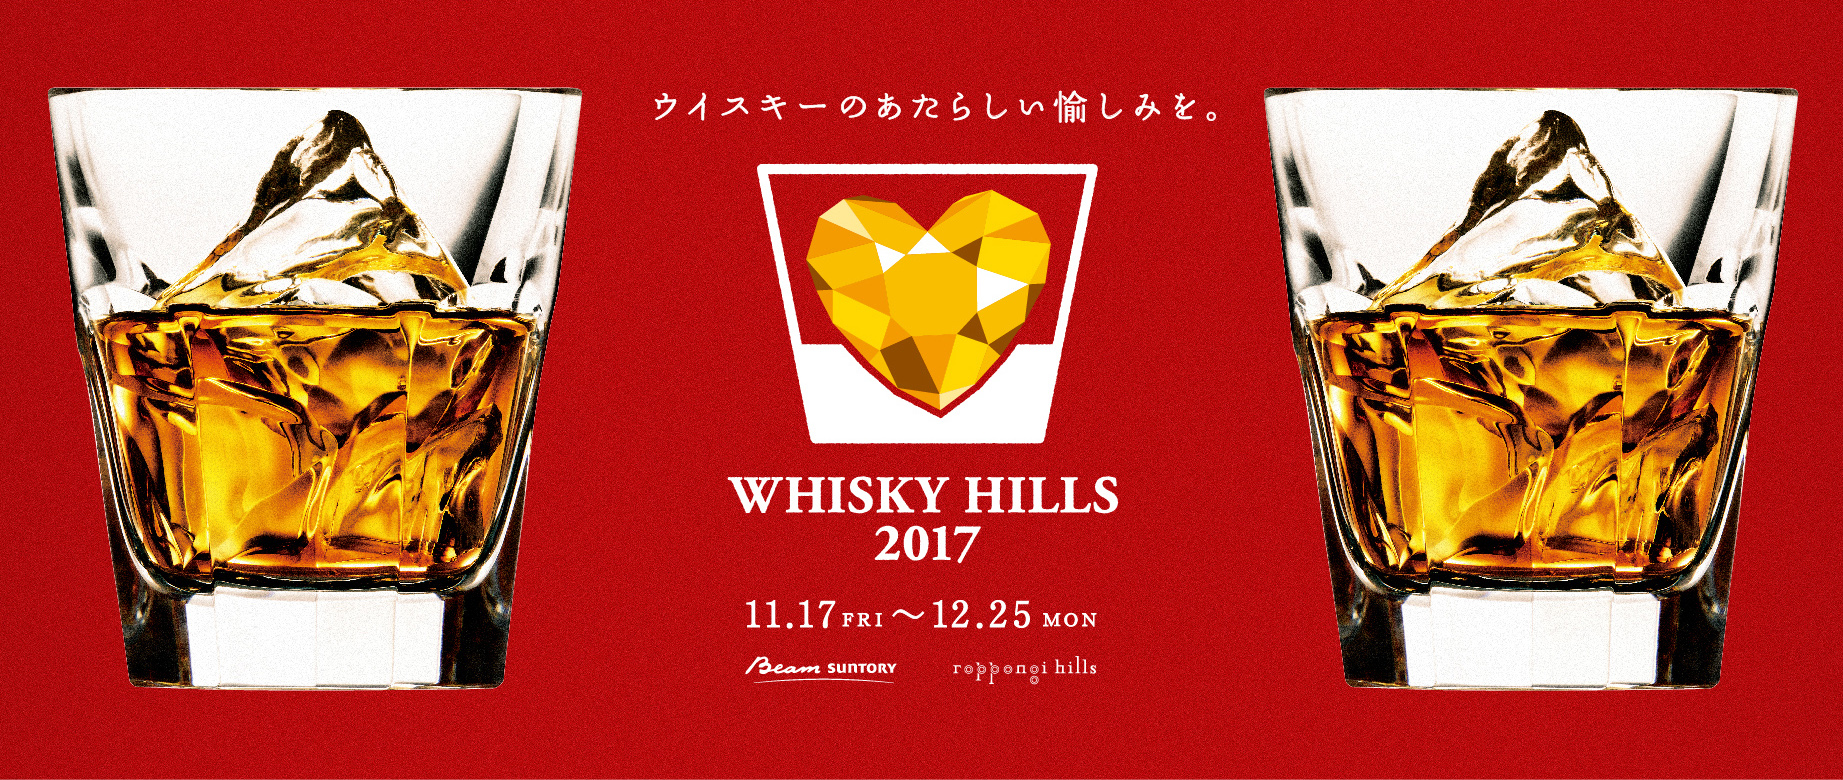 Whisky Hills 2017 is all about Jim Beam